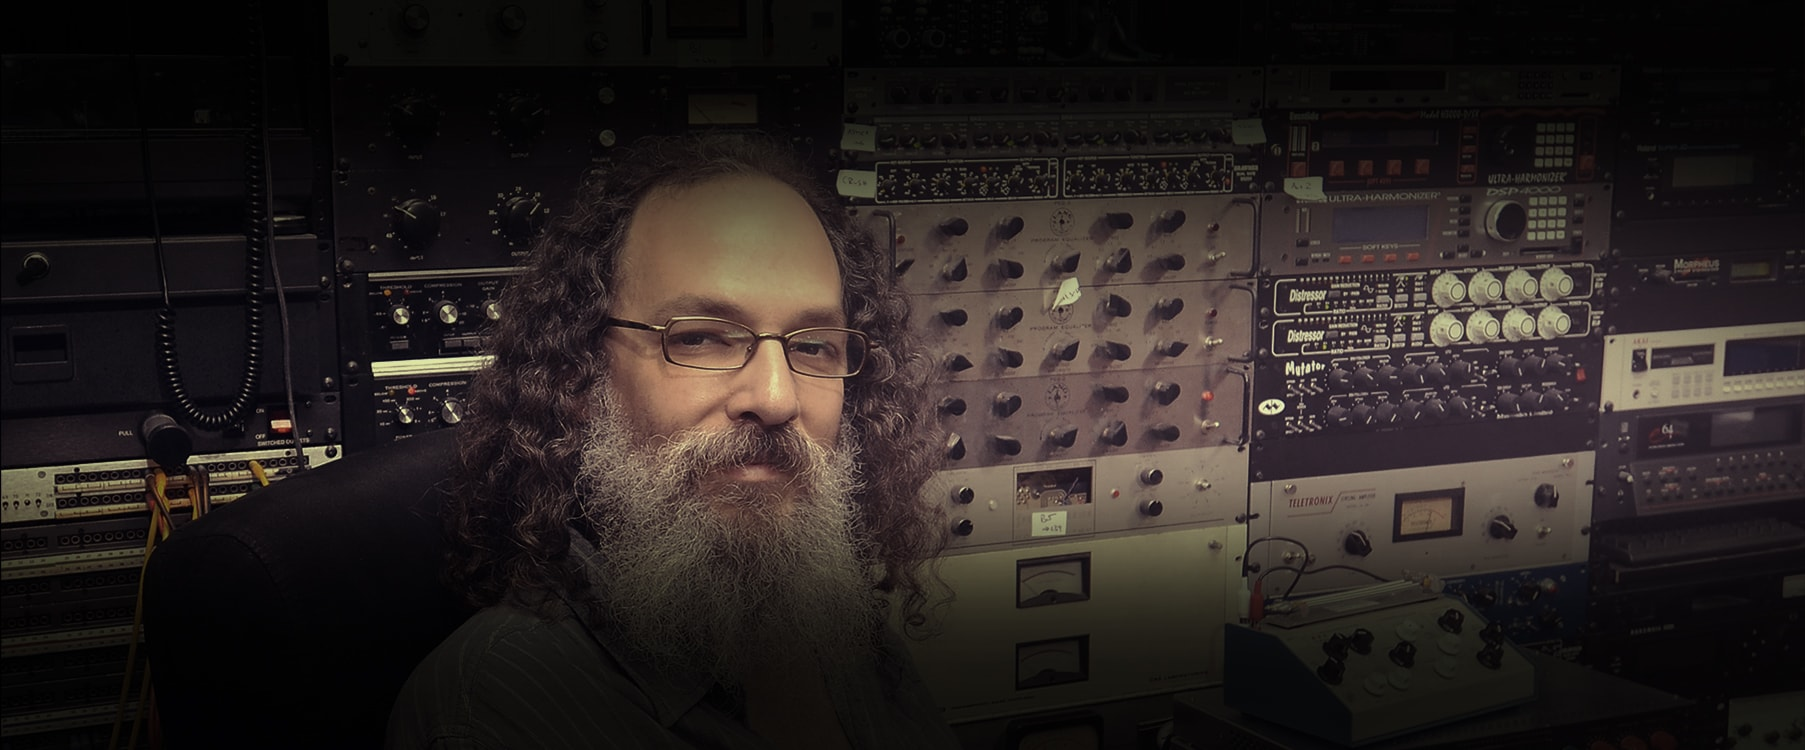 Andrew Scheps on Engineering Red Hot Chili Peppers, Mixing Adele, and Letting Songs 'Mix Themselves'